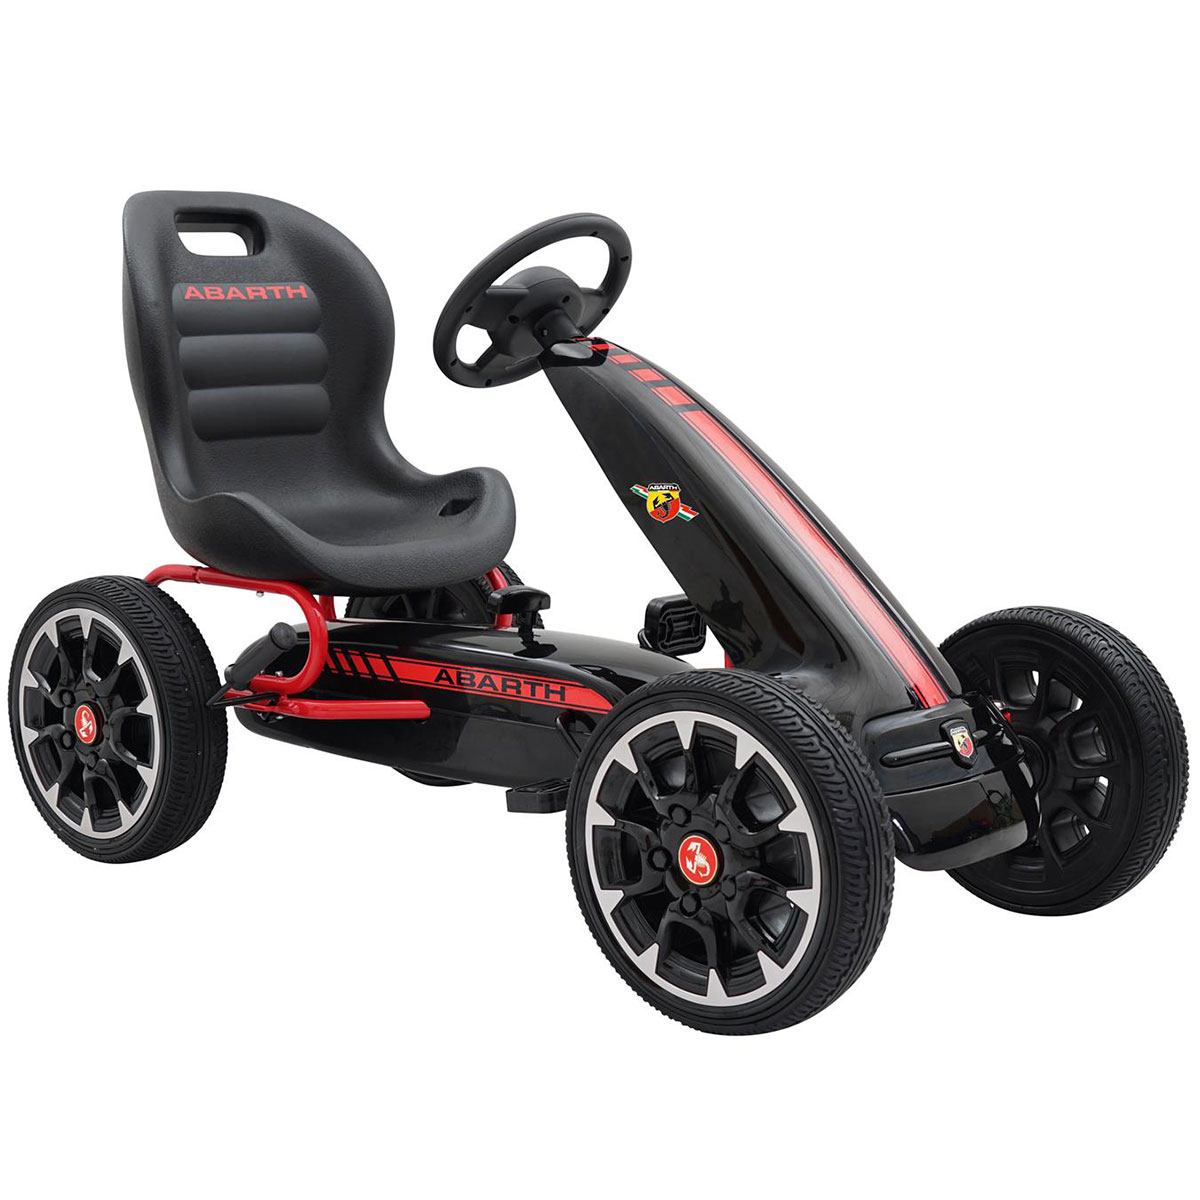 Image of   Abarth gokart med pedaler - Sort